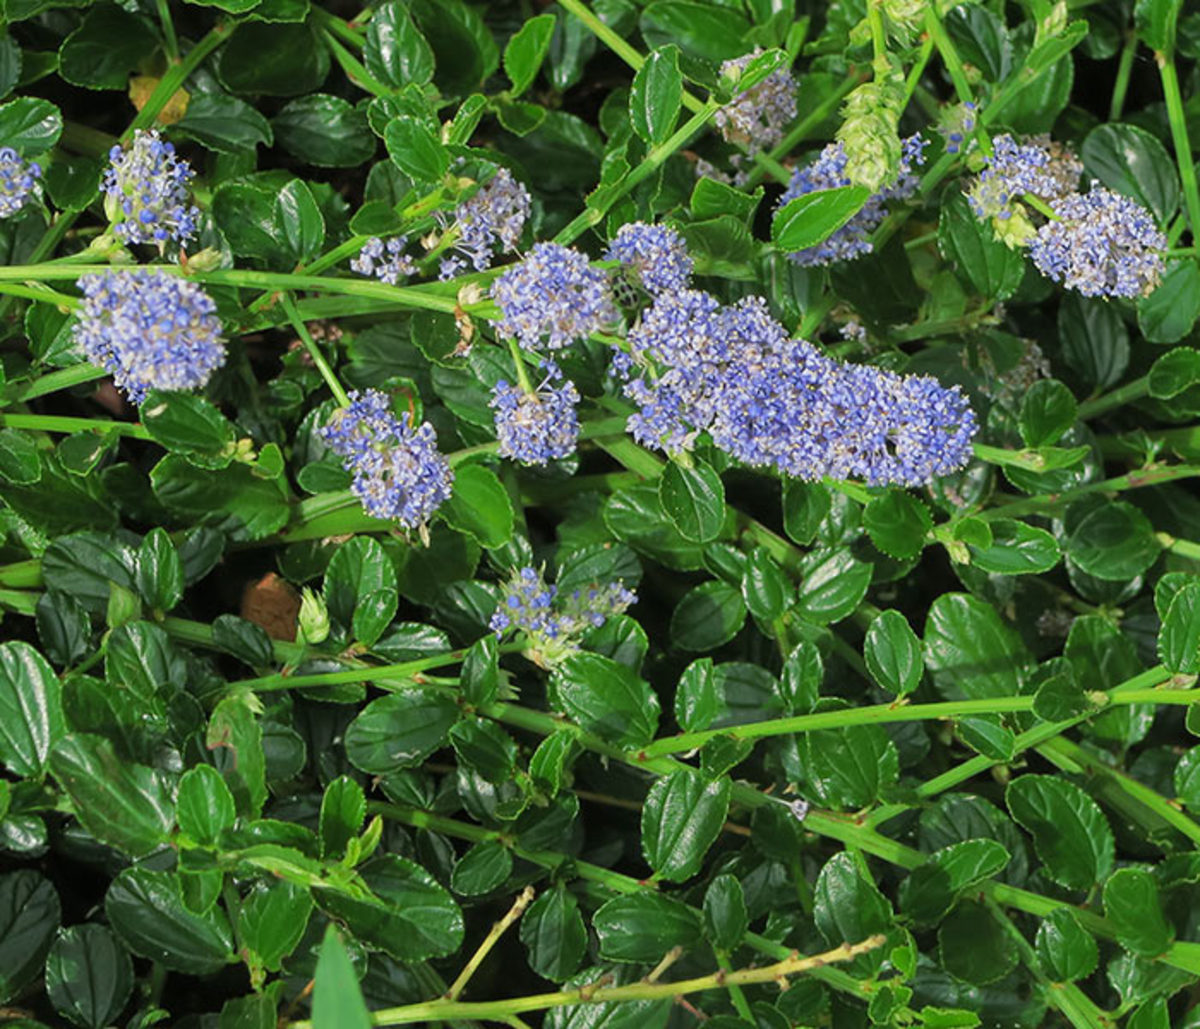 Creeping blueblossom is typically seen as a ground cover, but it can be easily pruned to grow upward and shrubby when sited at the base of a wall.